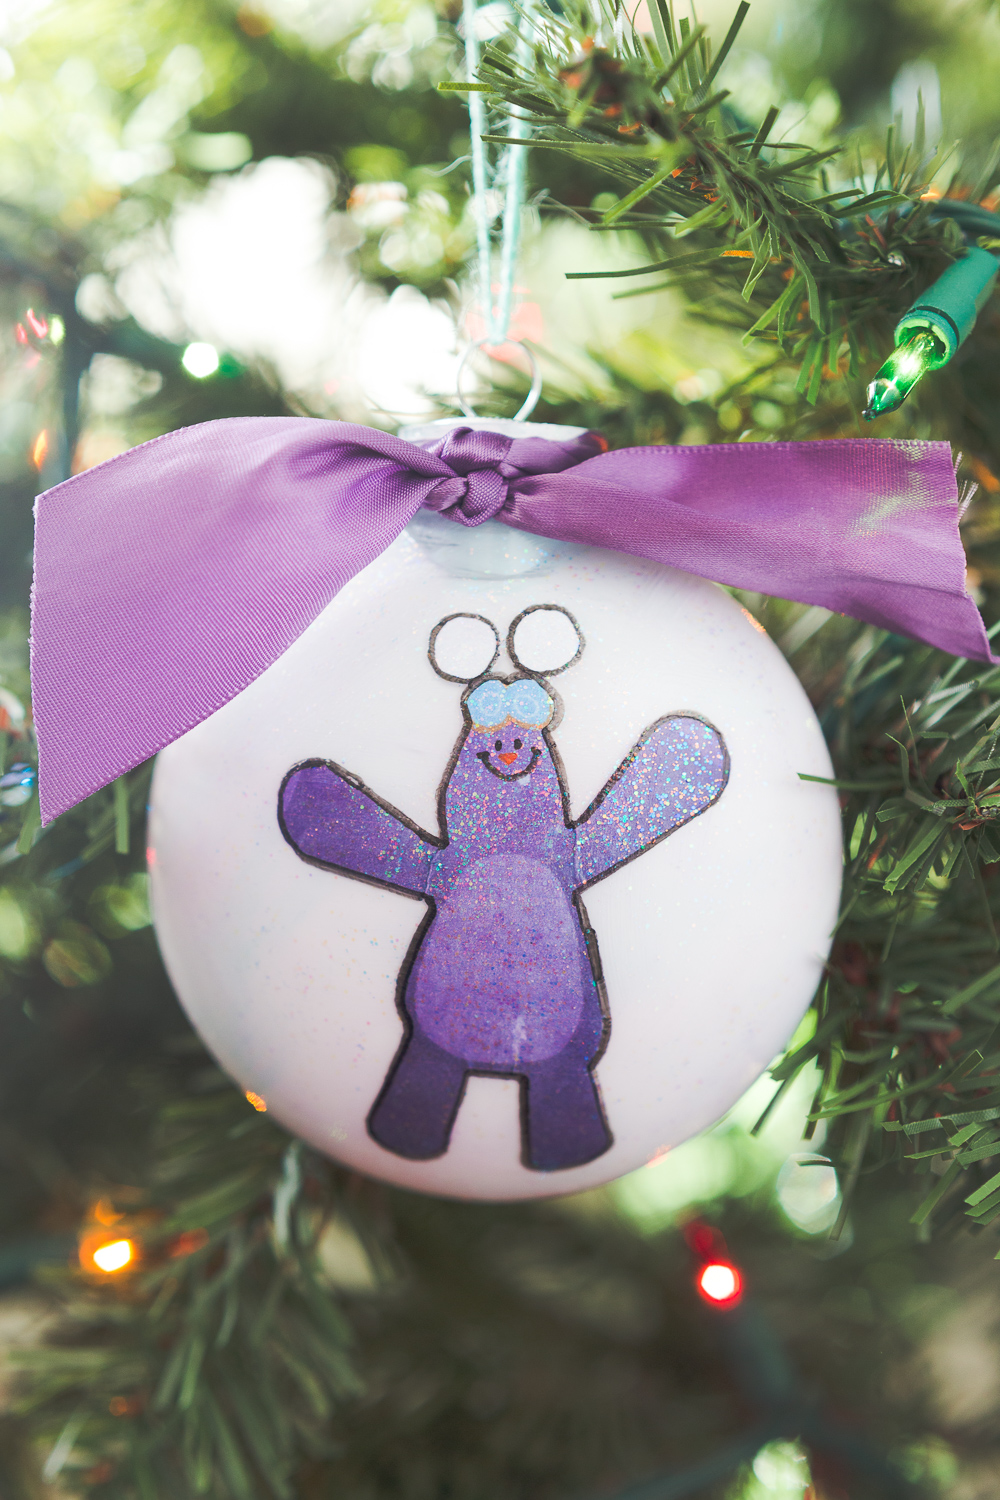 This Mim Mim Ornament is perfect for any Kate and Mim Mim fan!  Tied with a purple bow and some sparkle this is an ornament your kids will really enjoy making!